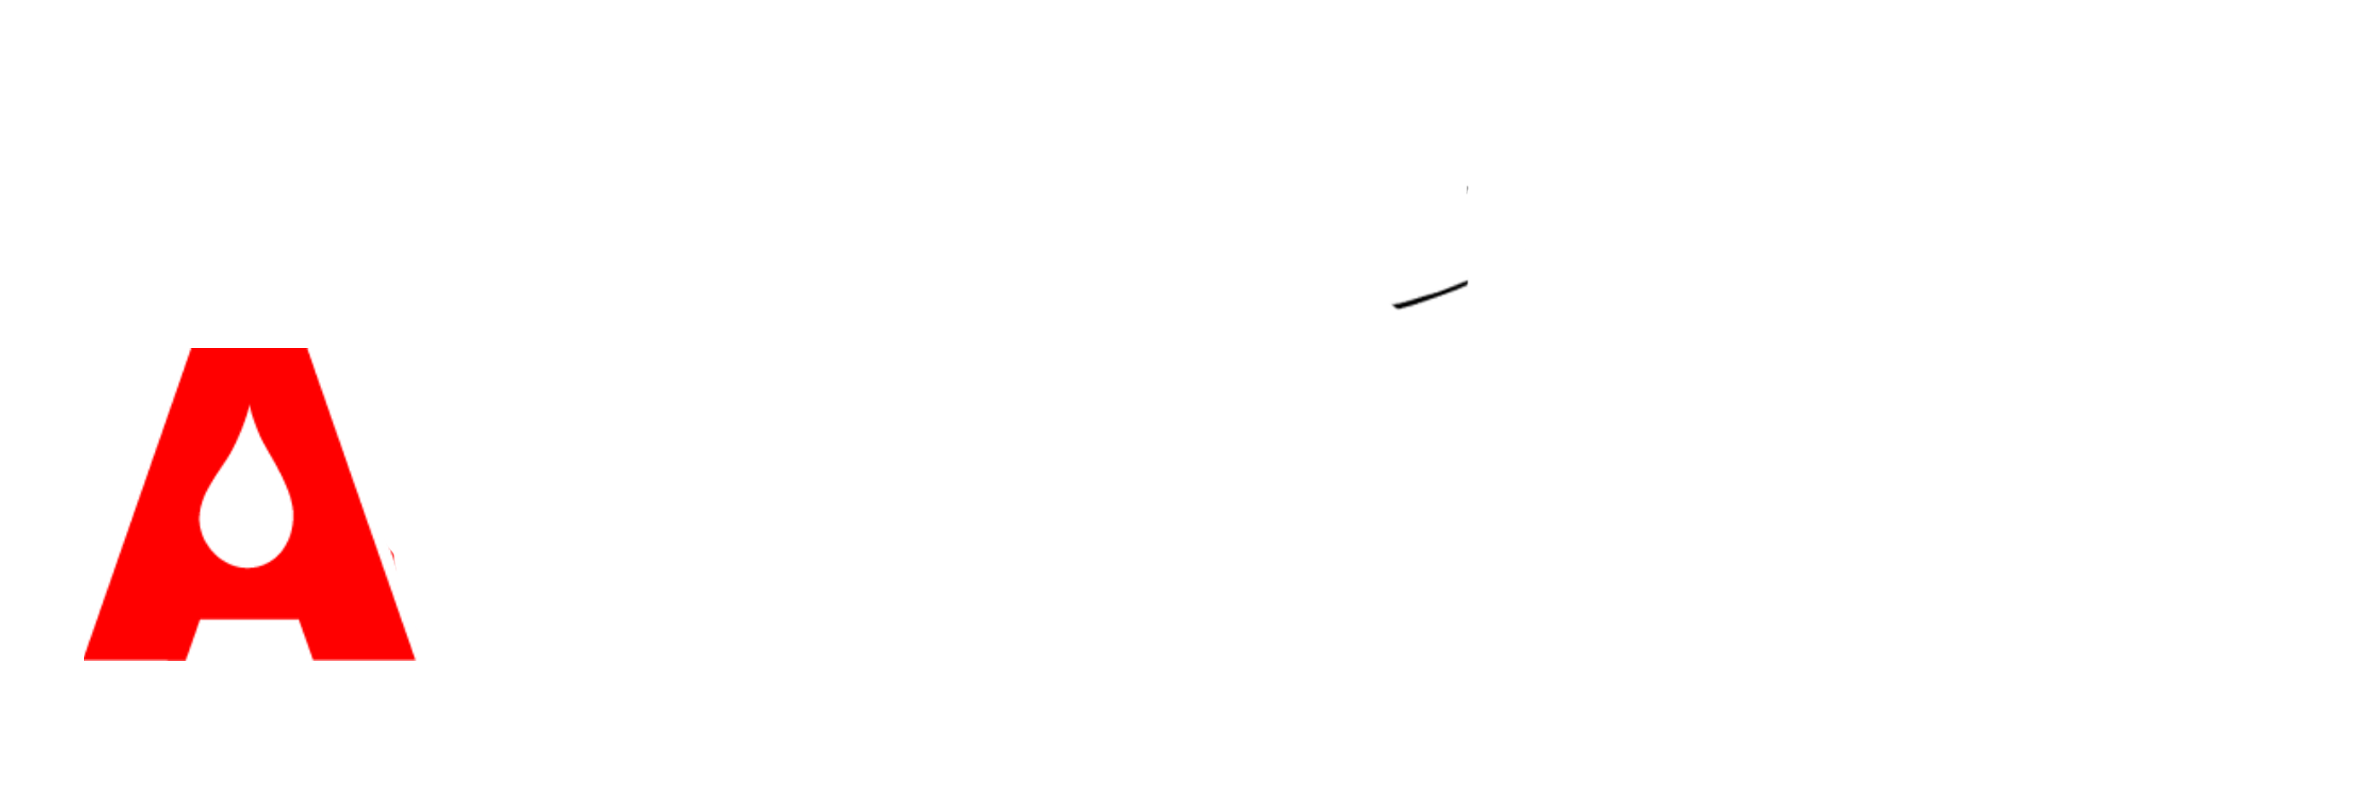 Aquafight Studios